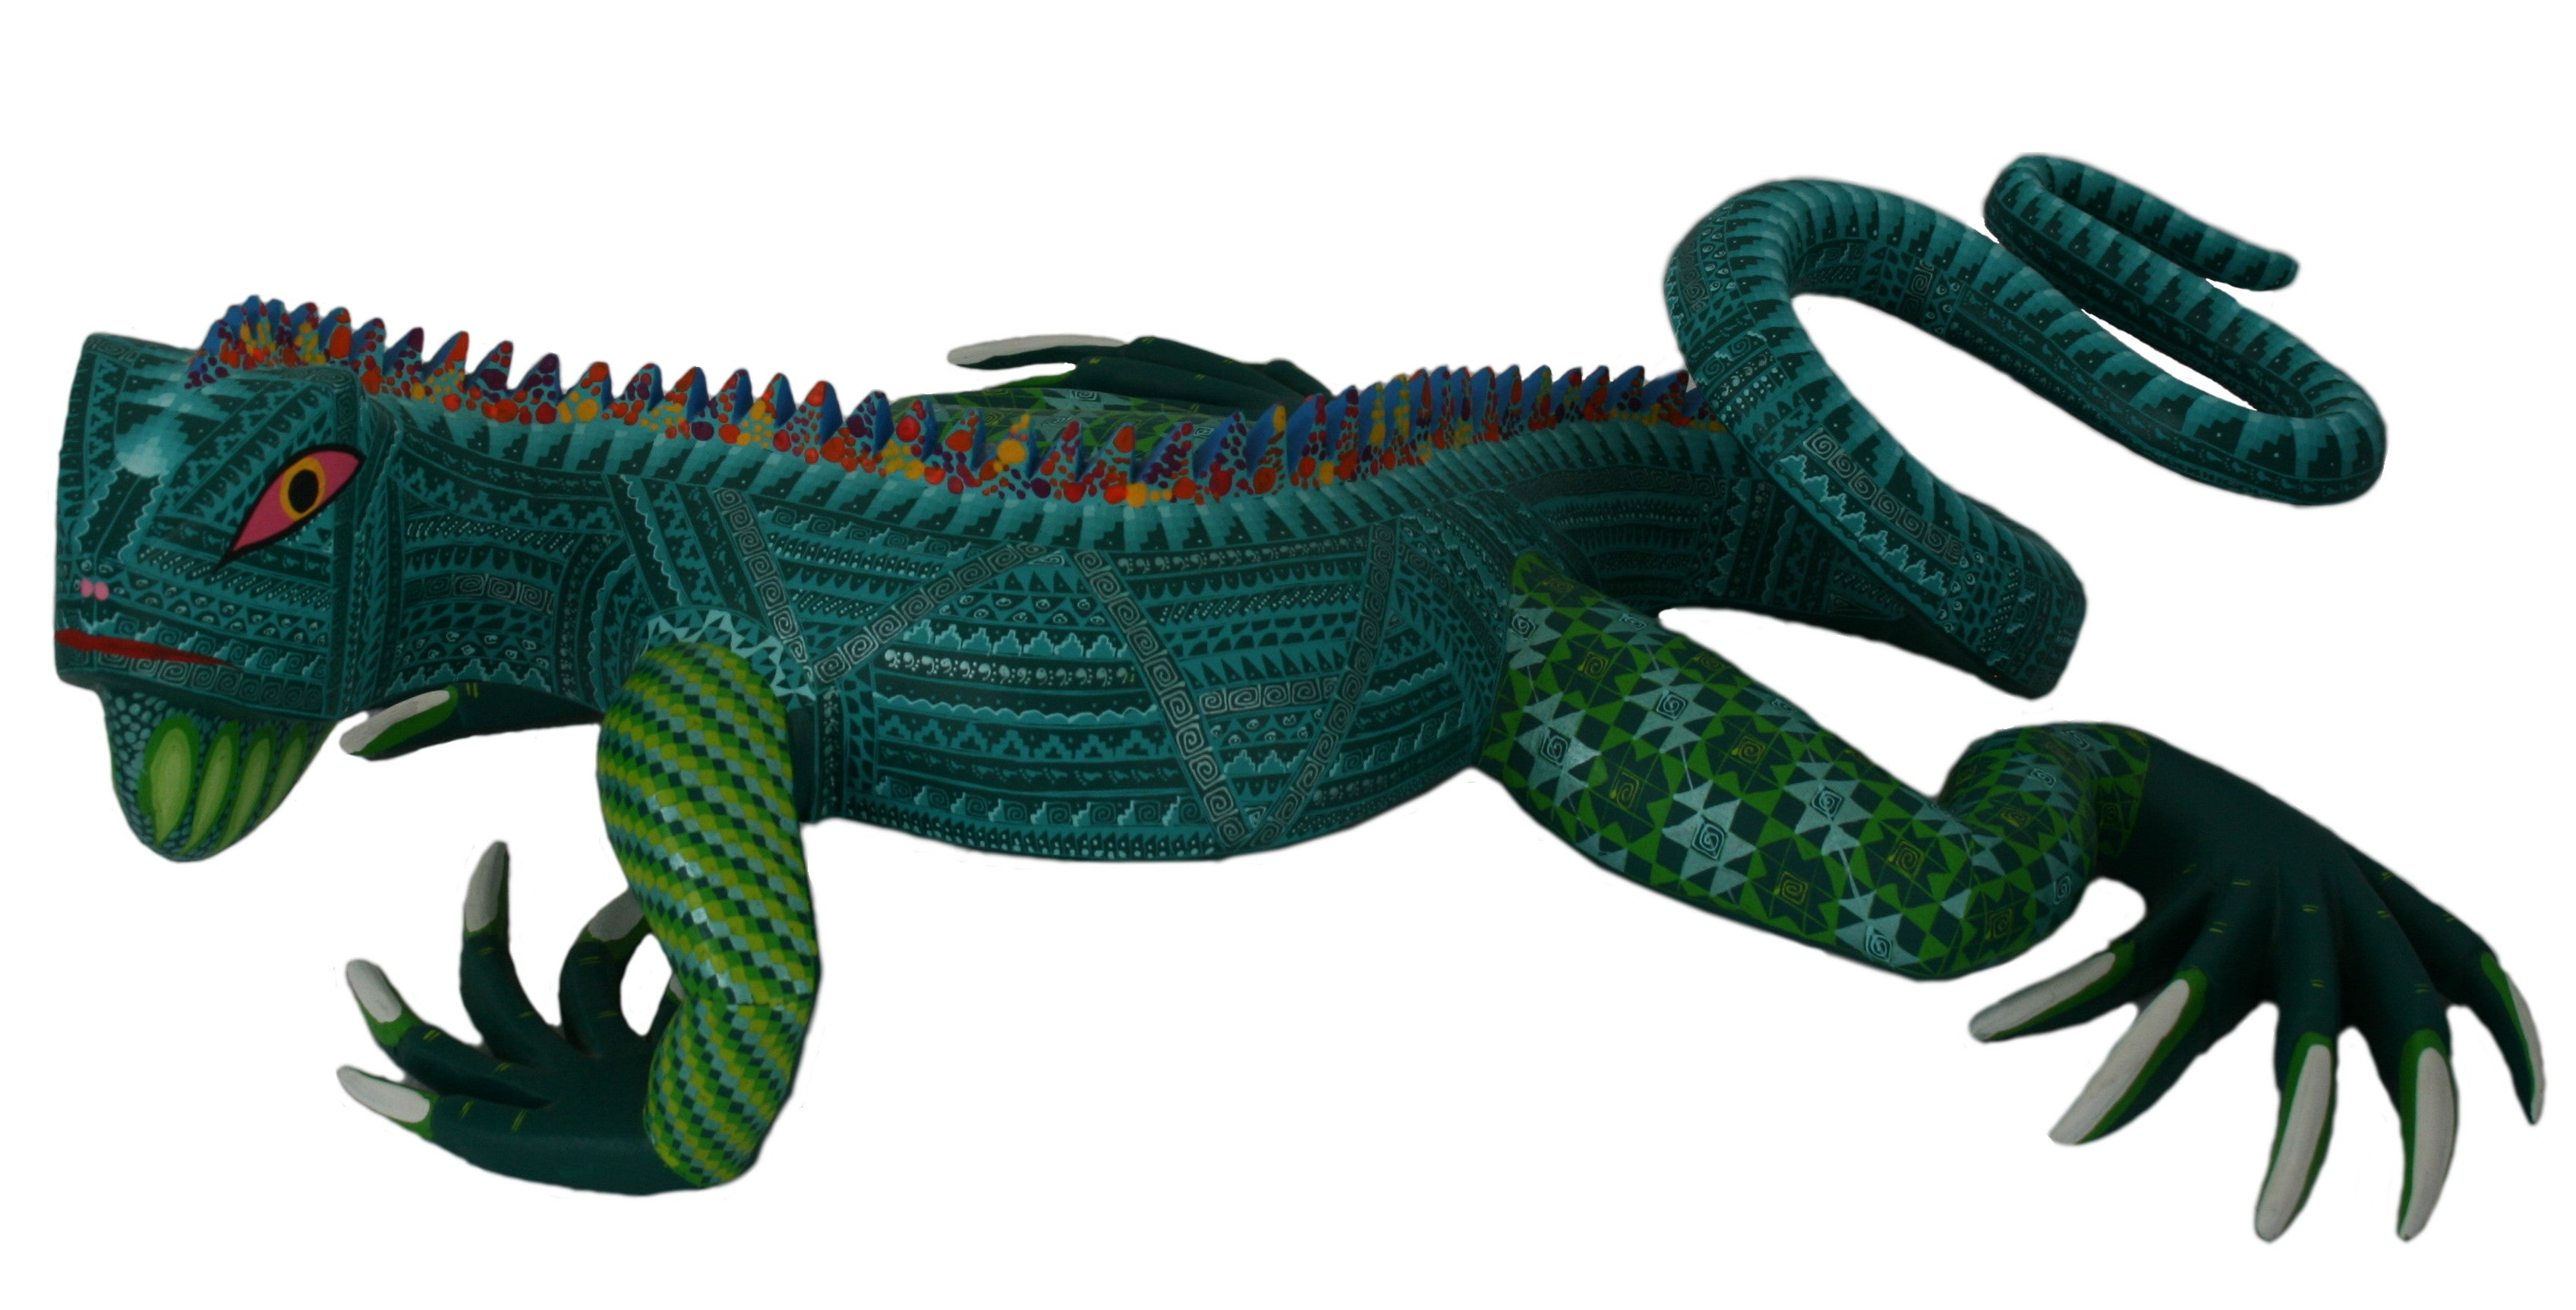 Iguana - Average Quality Alebrijes